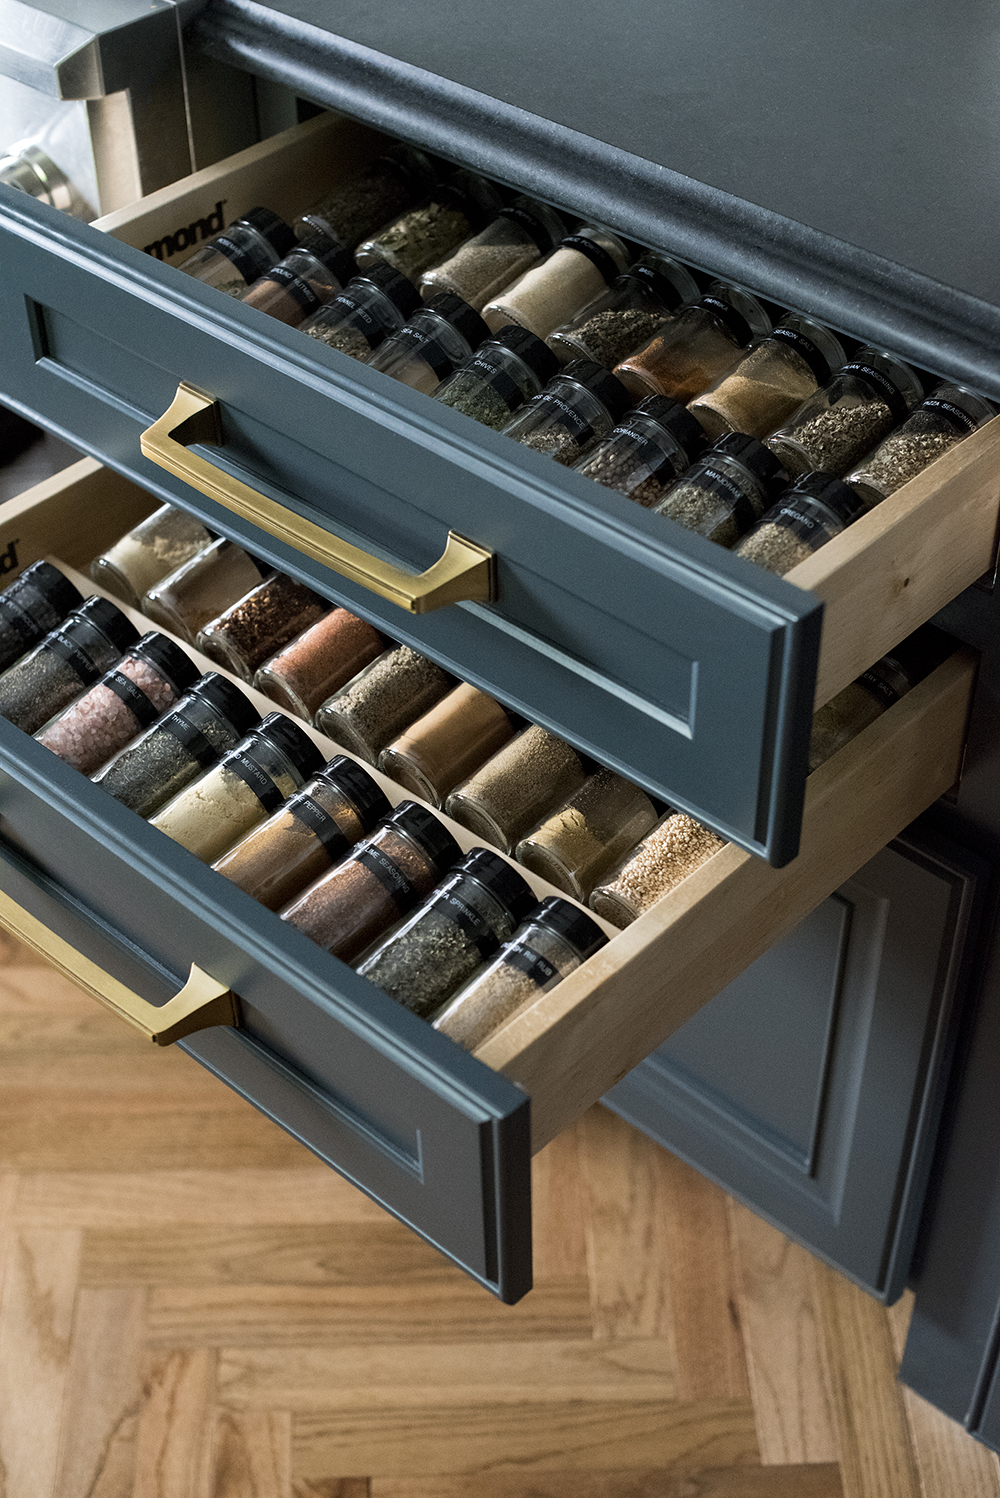 Spice Rack Organization DIY - roomfortuesday.com